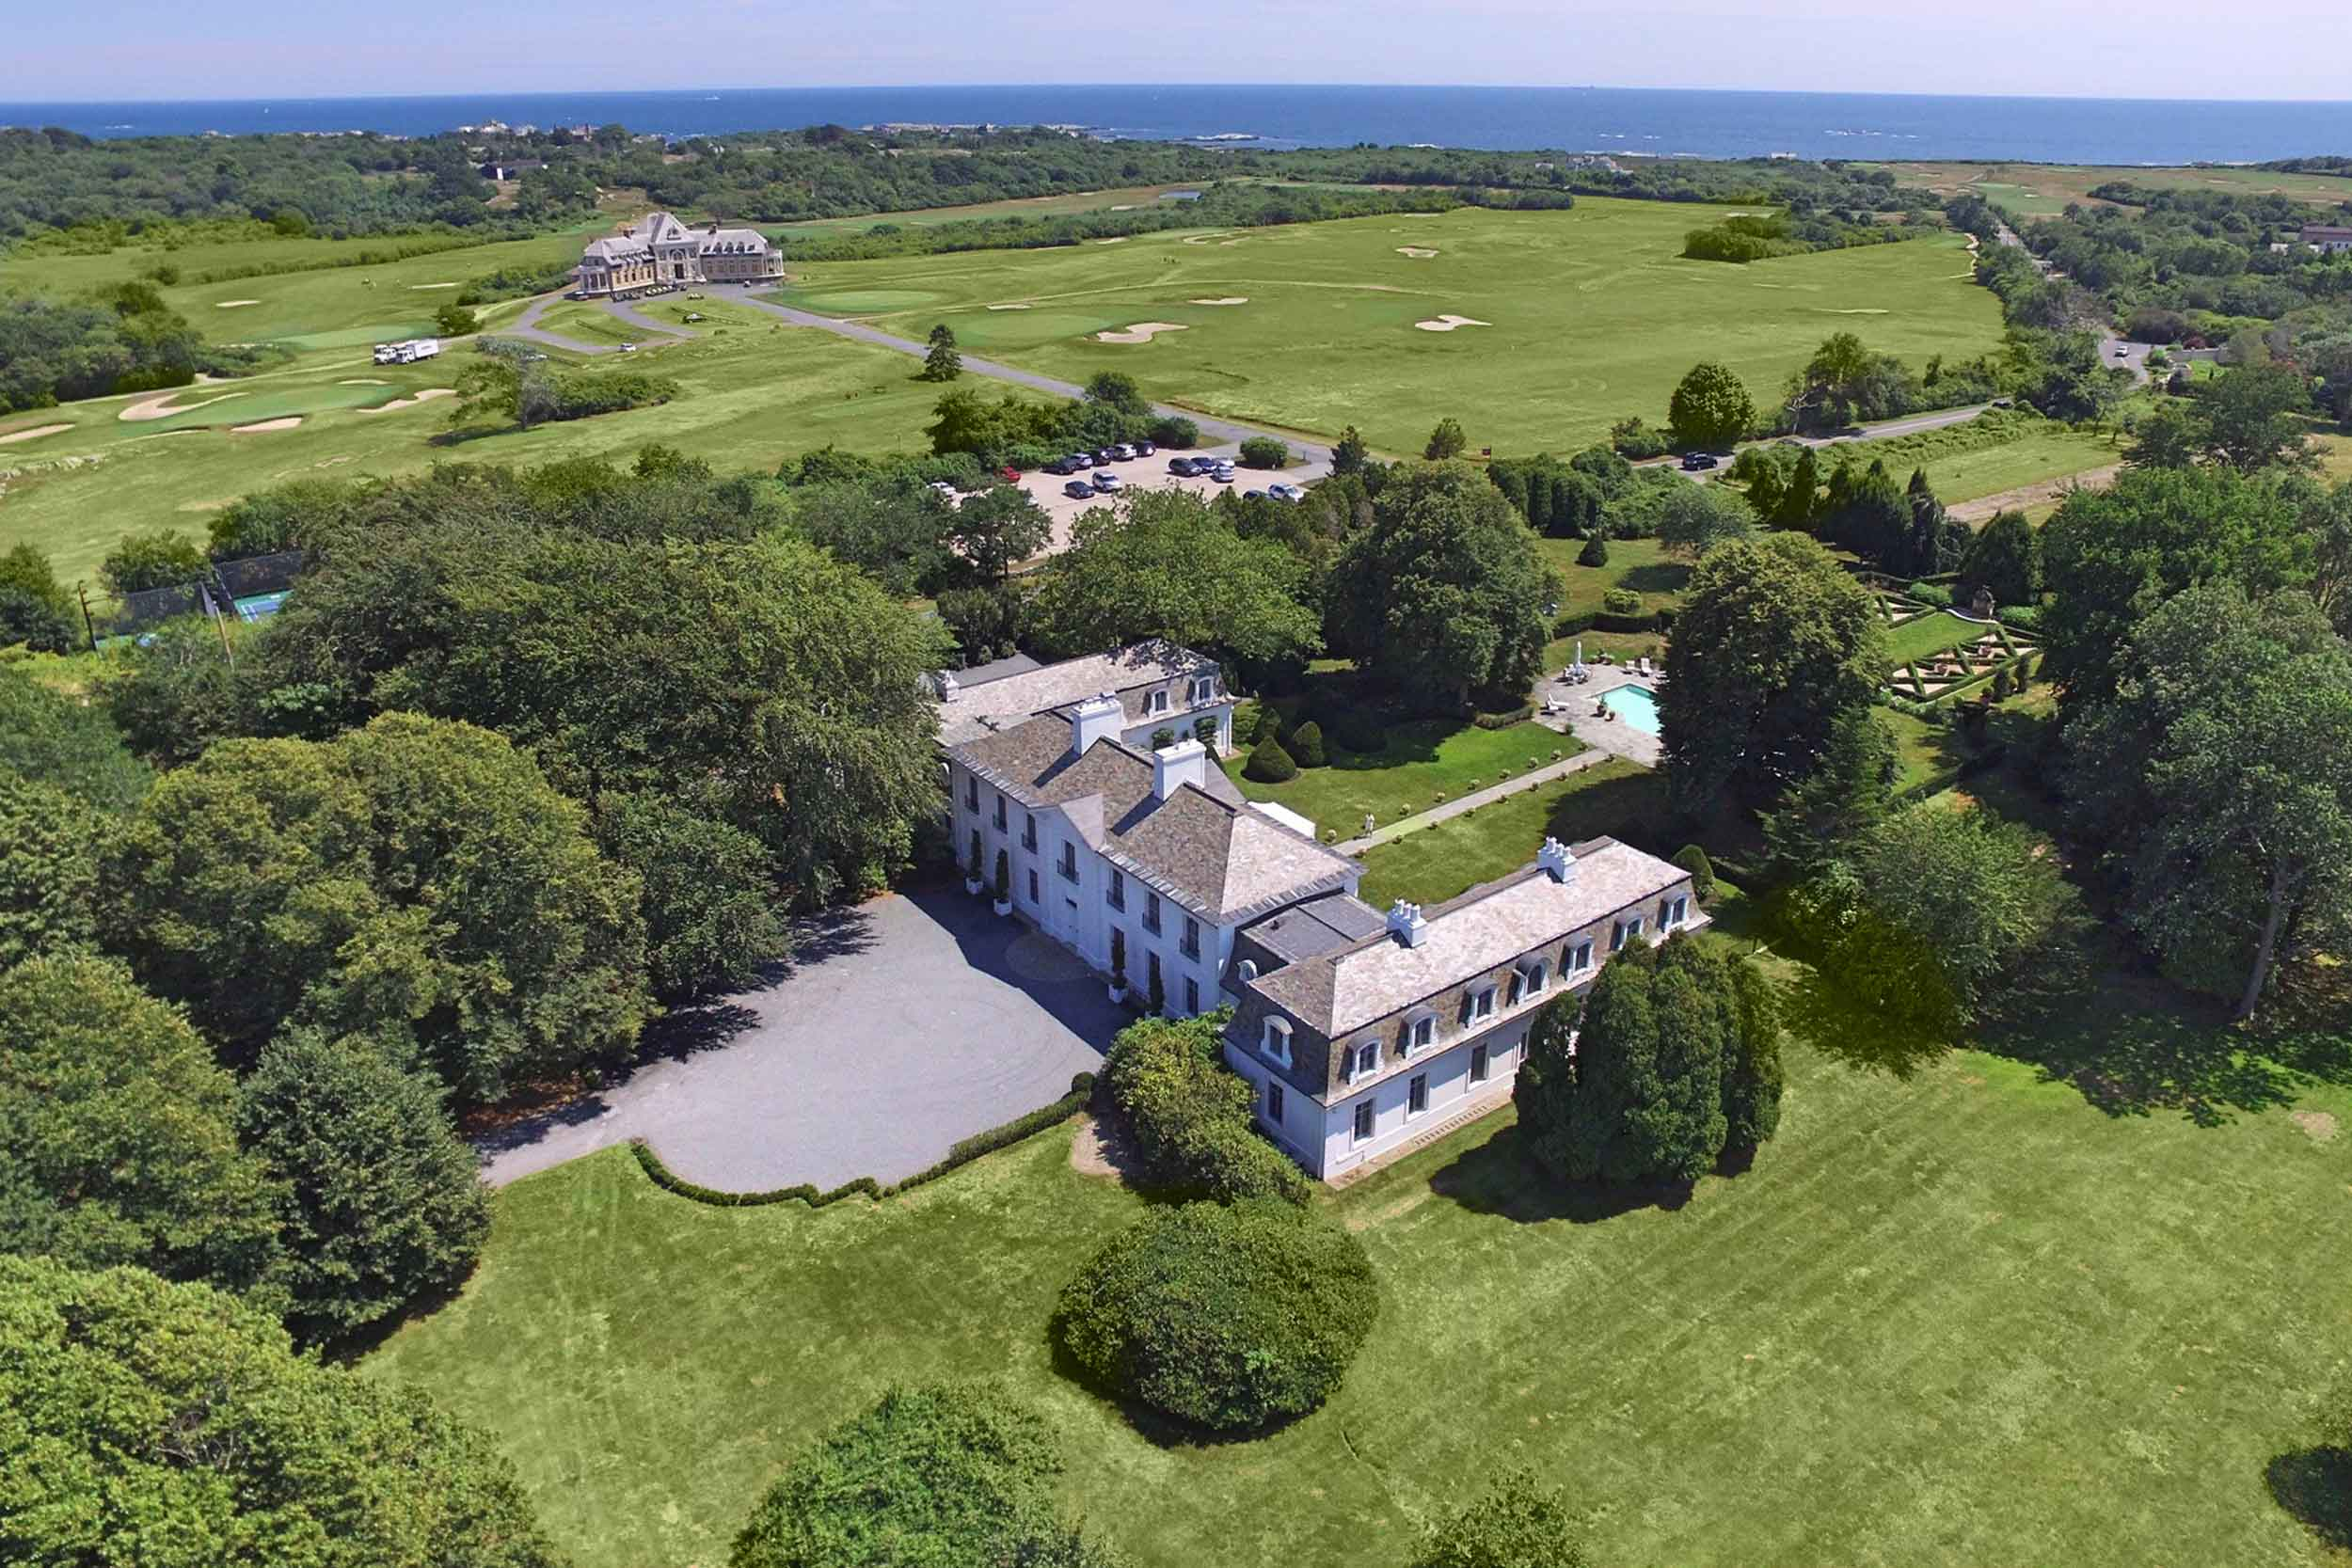 This historic Newport, Rhode Island, landmark has all the signature style notes of Provence with grand Louis XVI architectural flourishes.